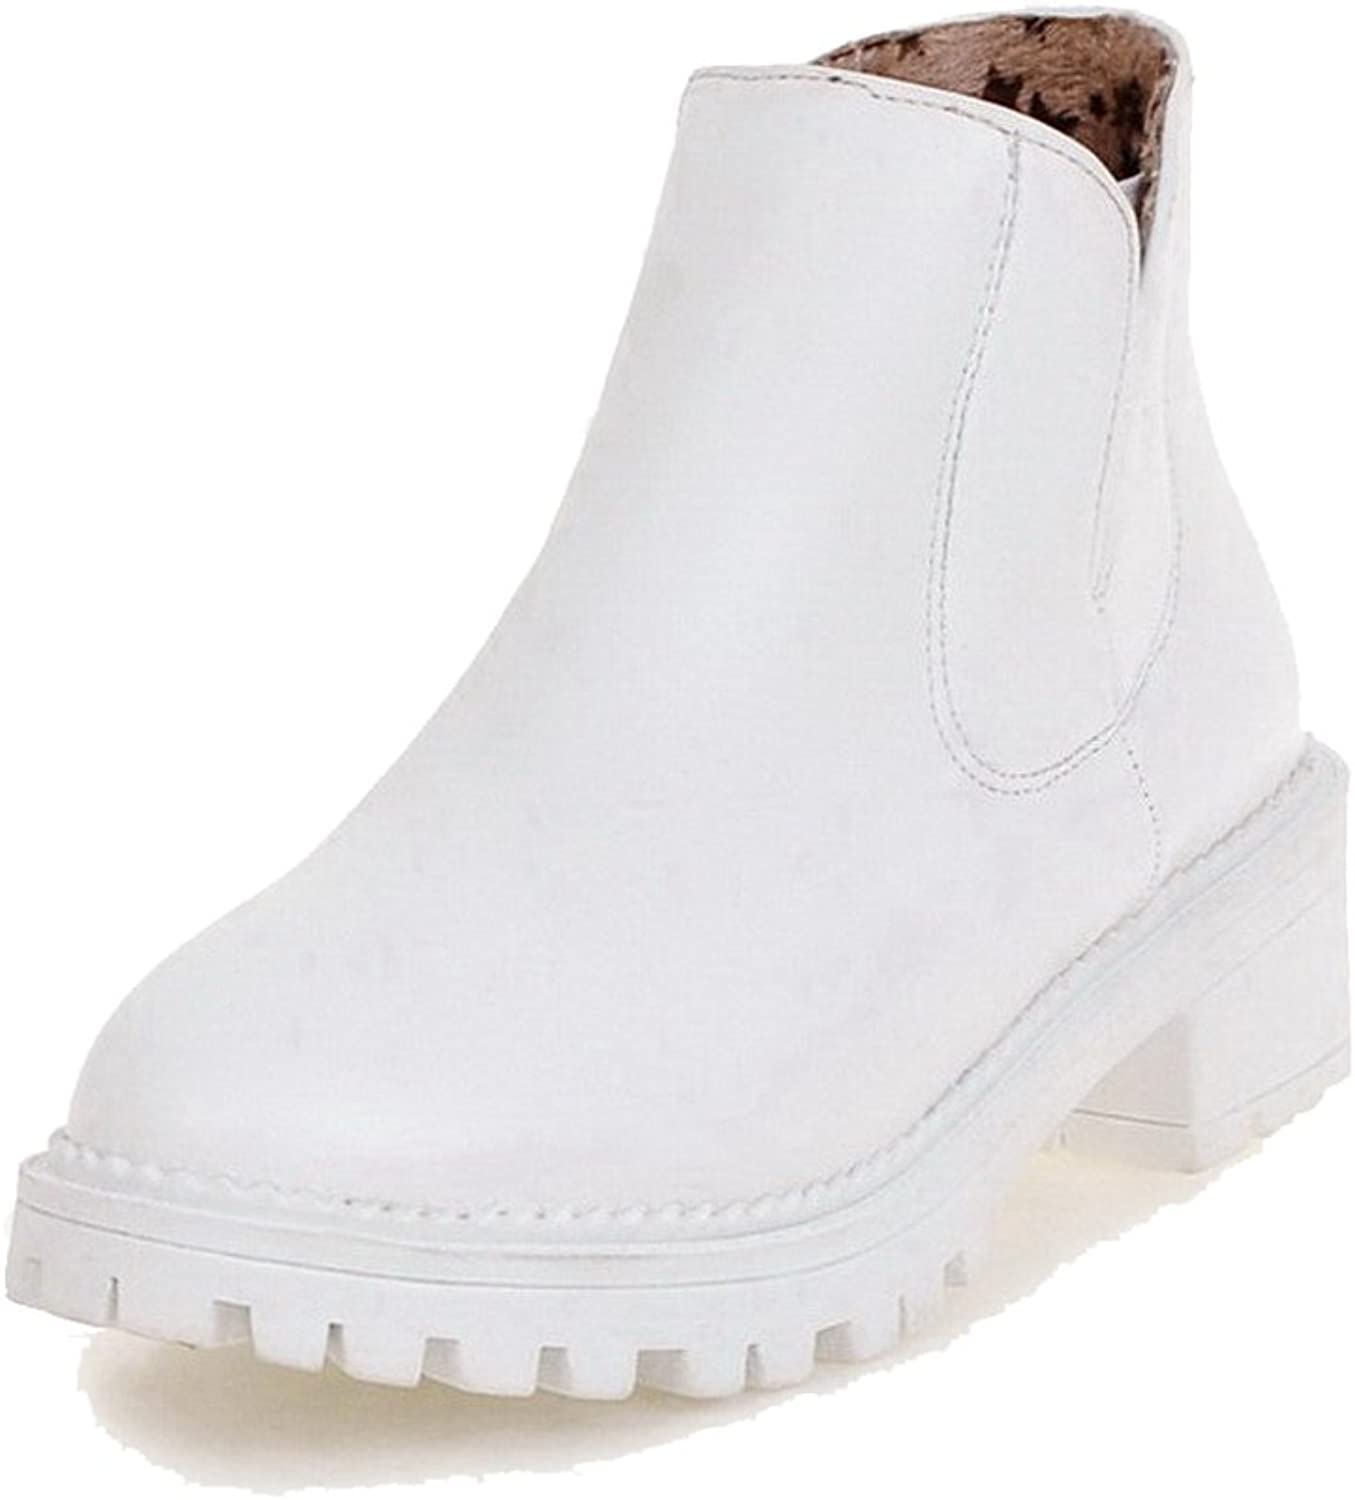 WeenFashion Women's Low-Top Pull-On Soft Material Kitten-Heels Closed Round Toe Boots